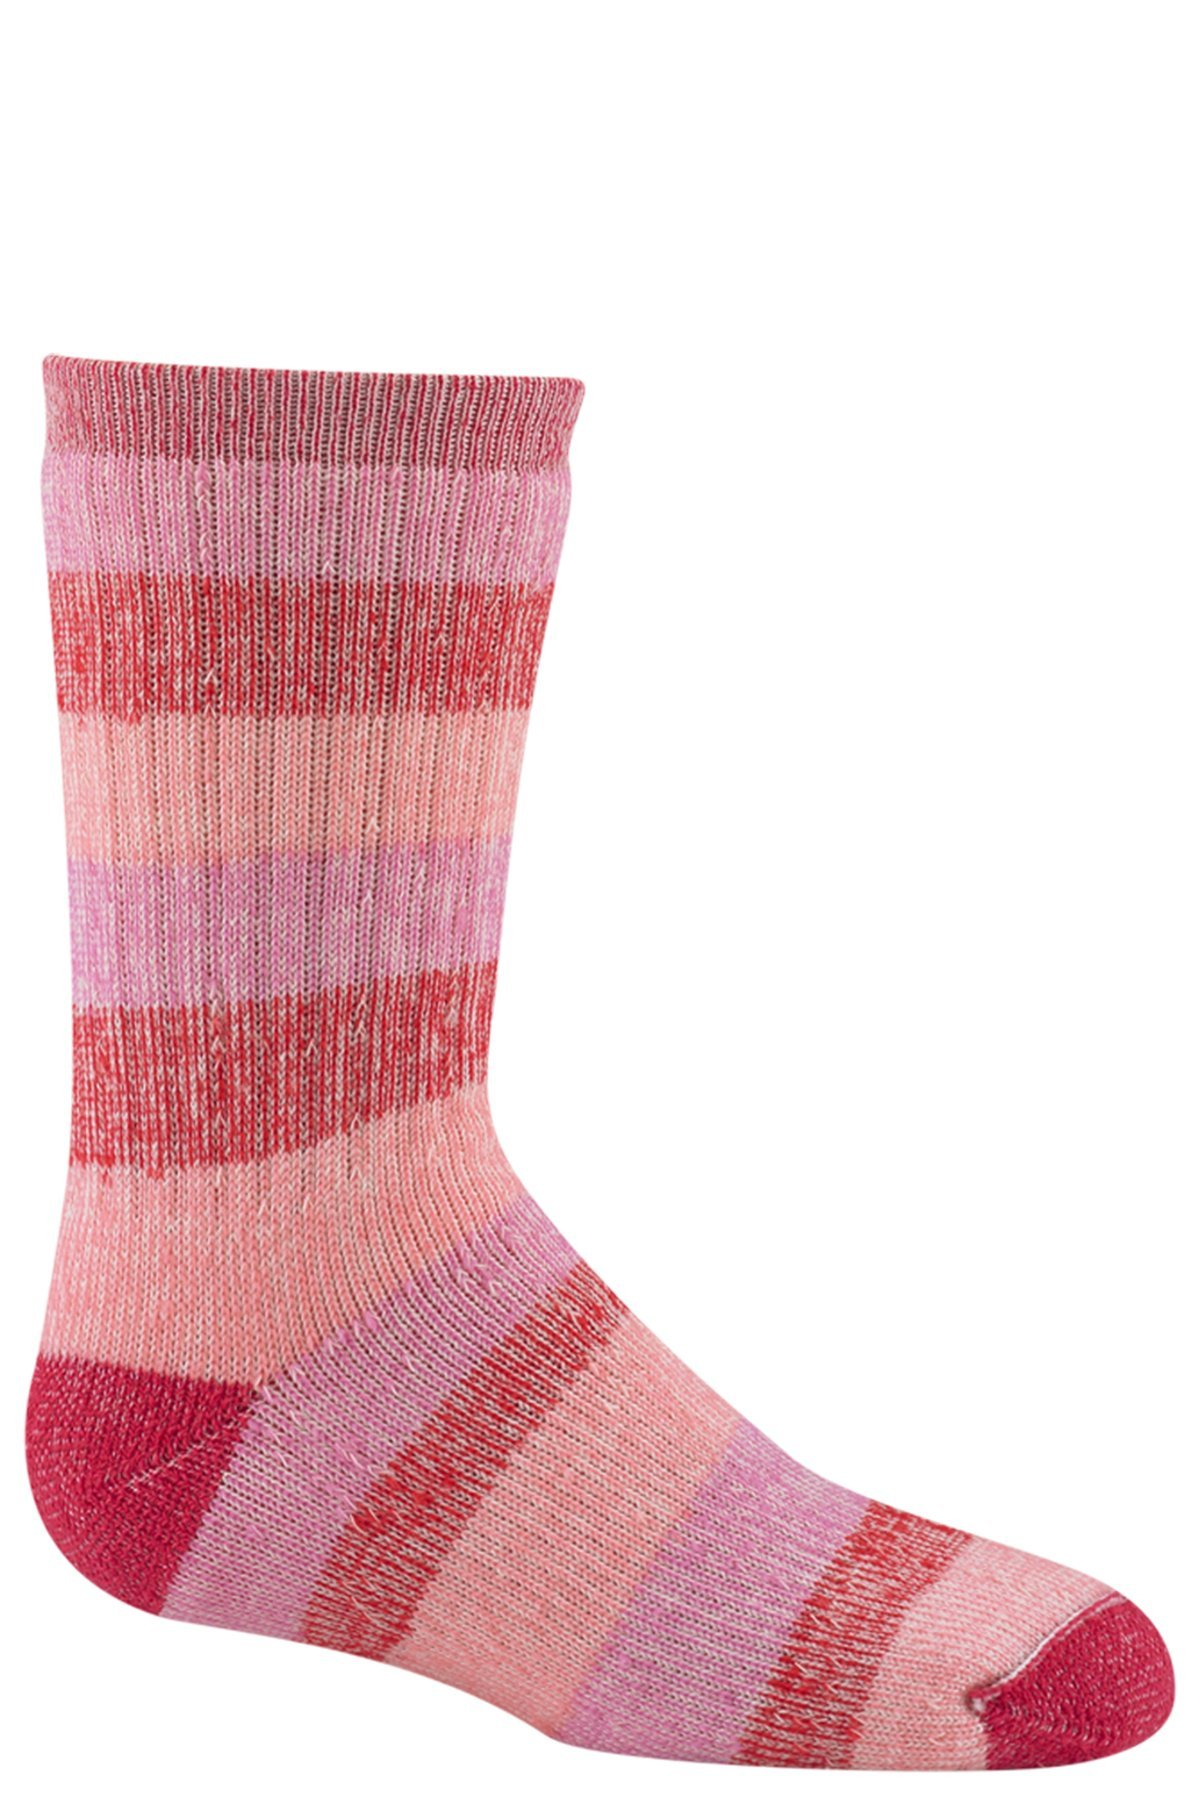 Wigwam Lil' Rascal Socks Rose / Pink YX with a Helicase brand sock ring